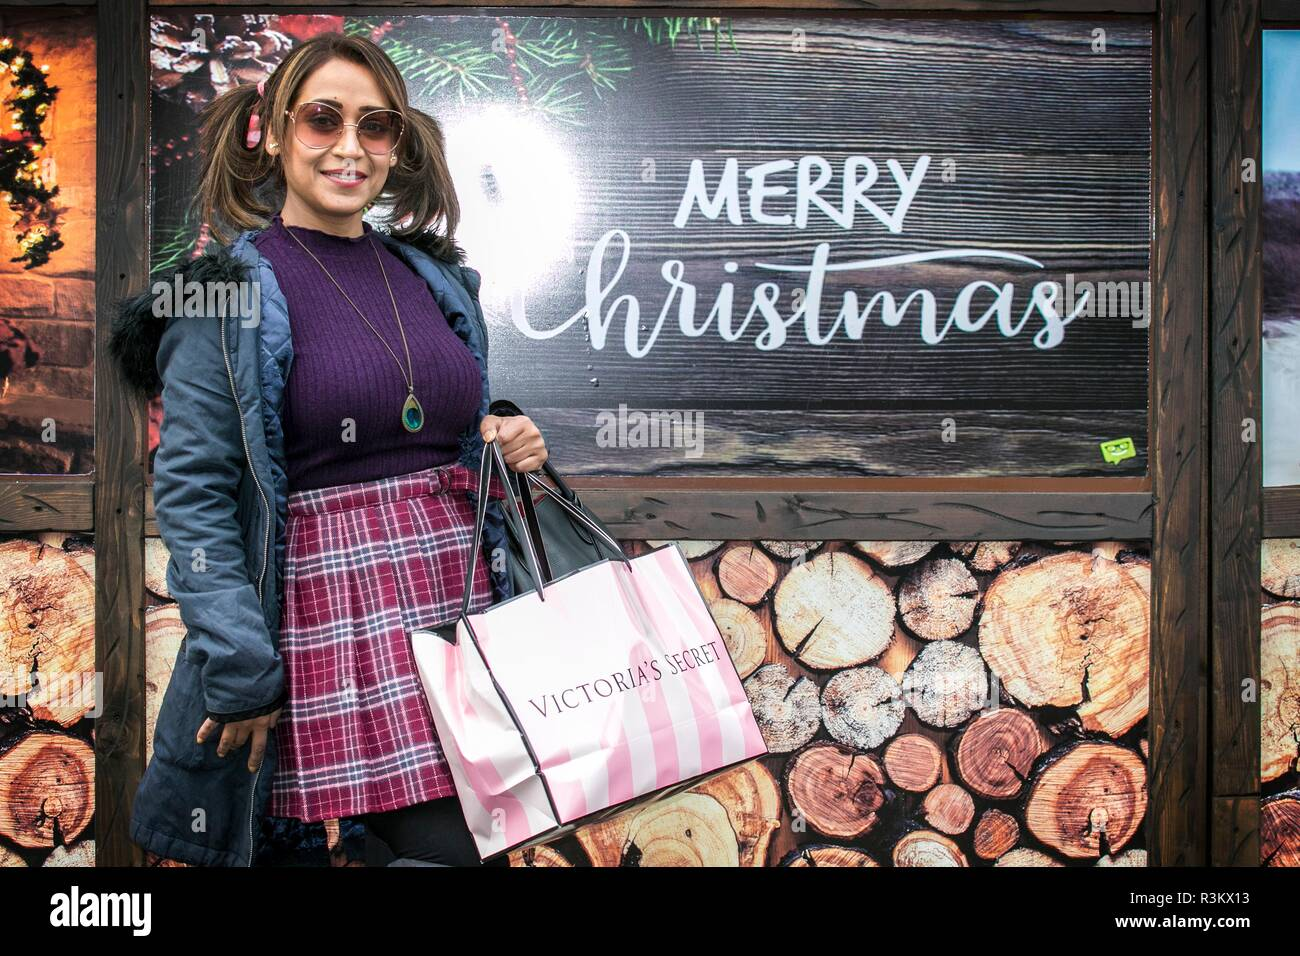 ccbc485aa9b Victorias Secret Black Friday Sales. 23rd November 2018. Woman flocks to Victoria s  secret stores to bag high street bargains on one of the biggest ...